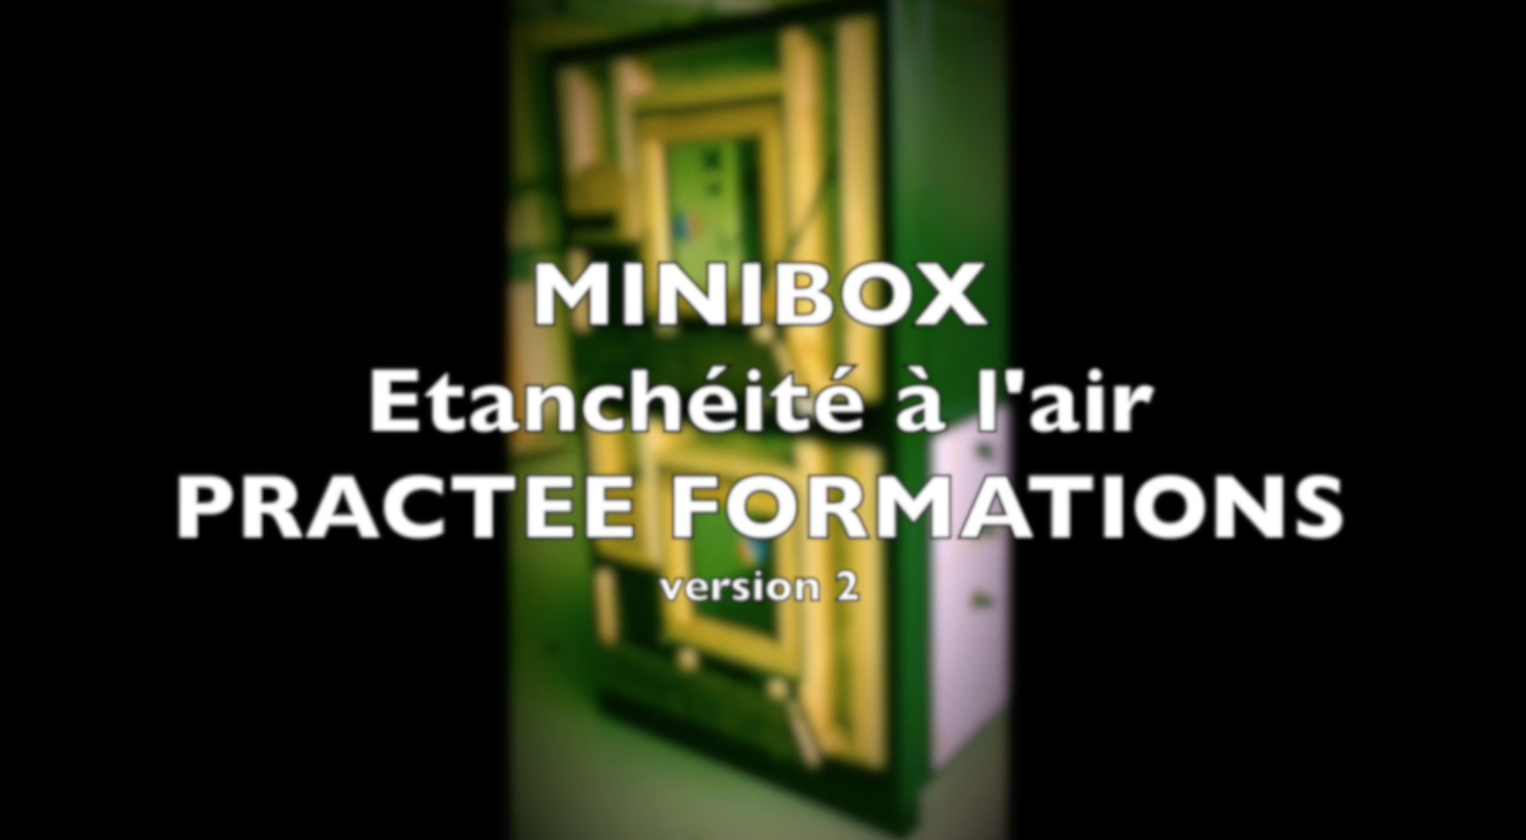 MINIBOX Etanchit lair